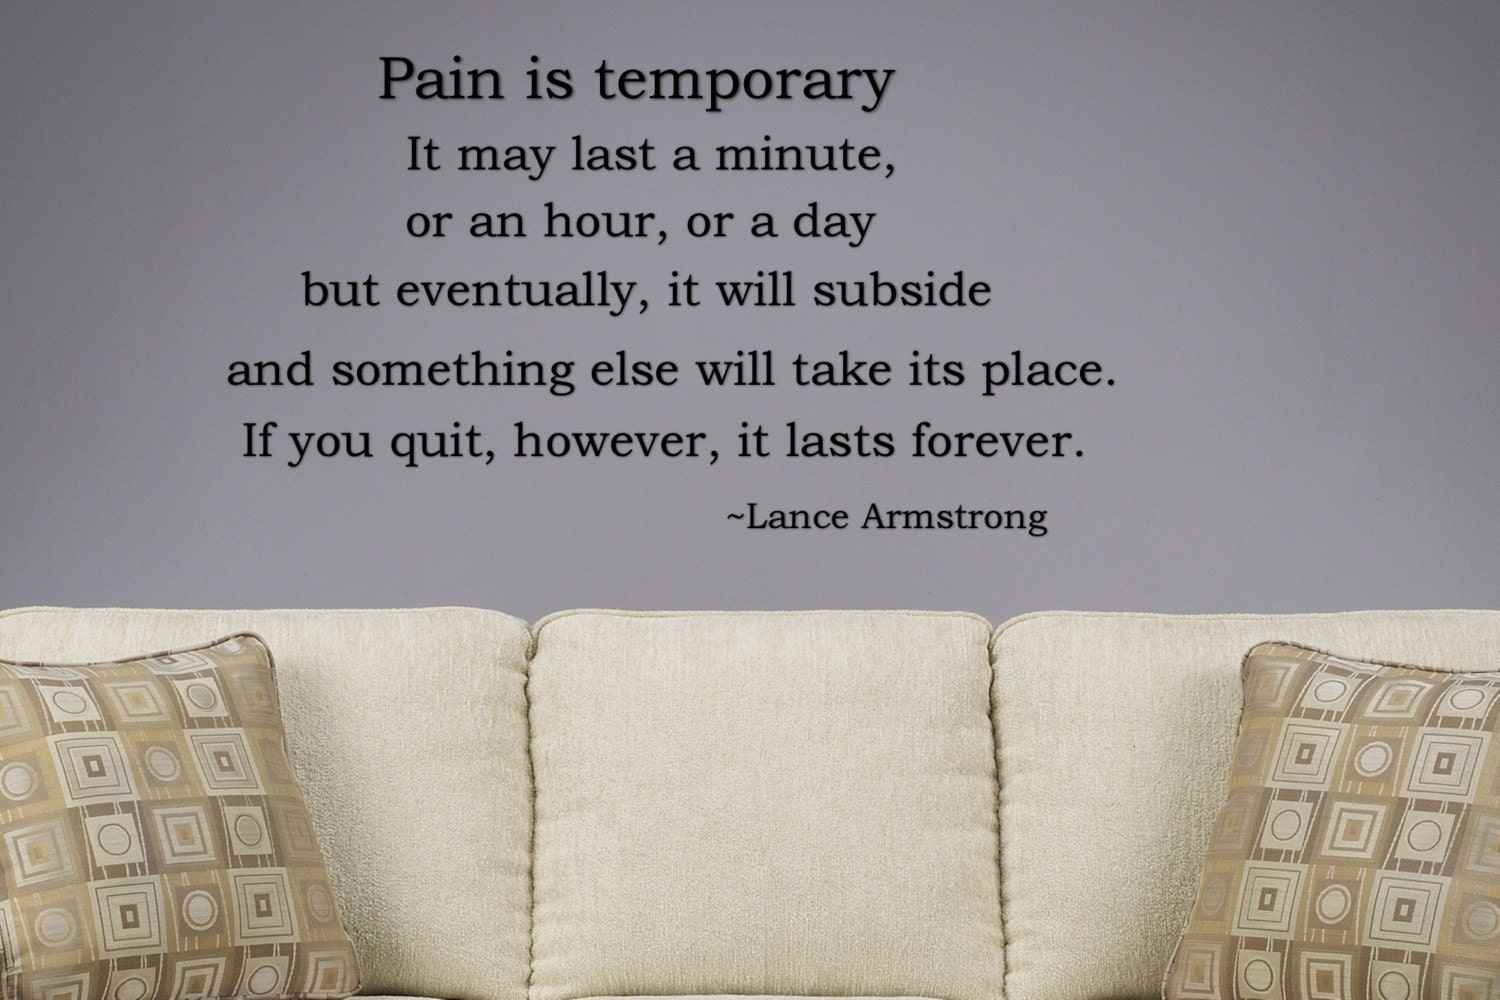 Vinyl wall art sports quotes : Pain is temporary motivational vinyl wall art by